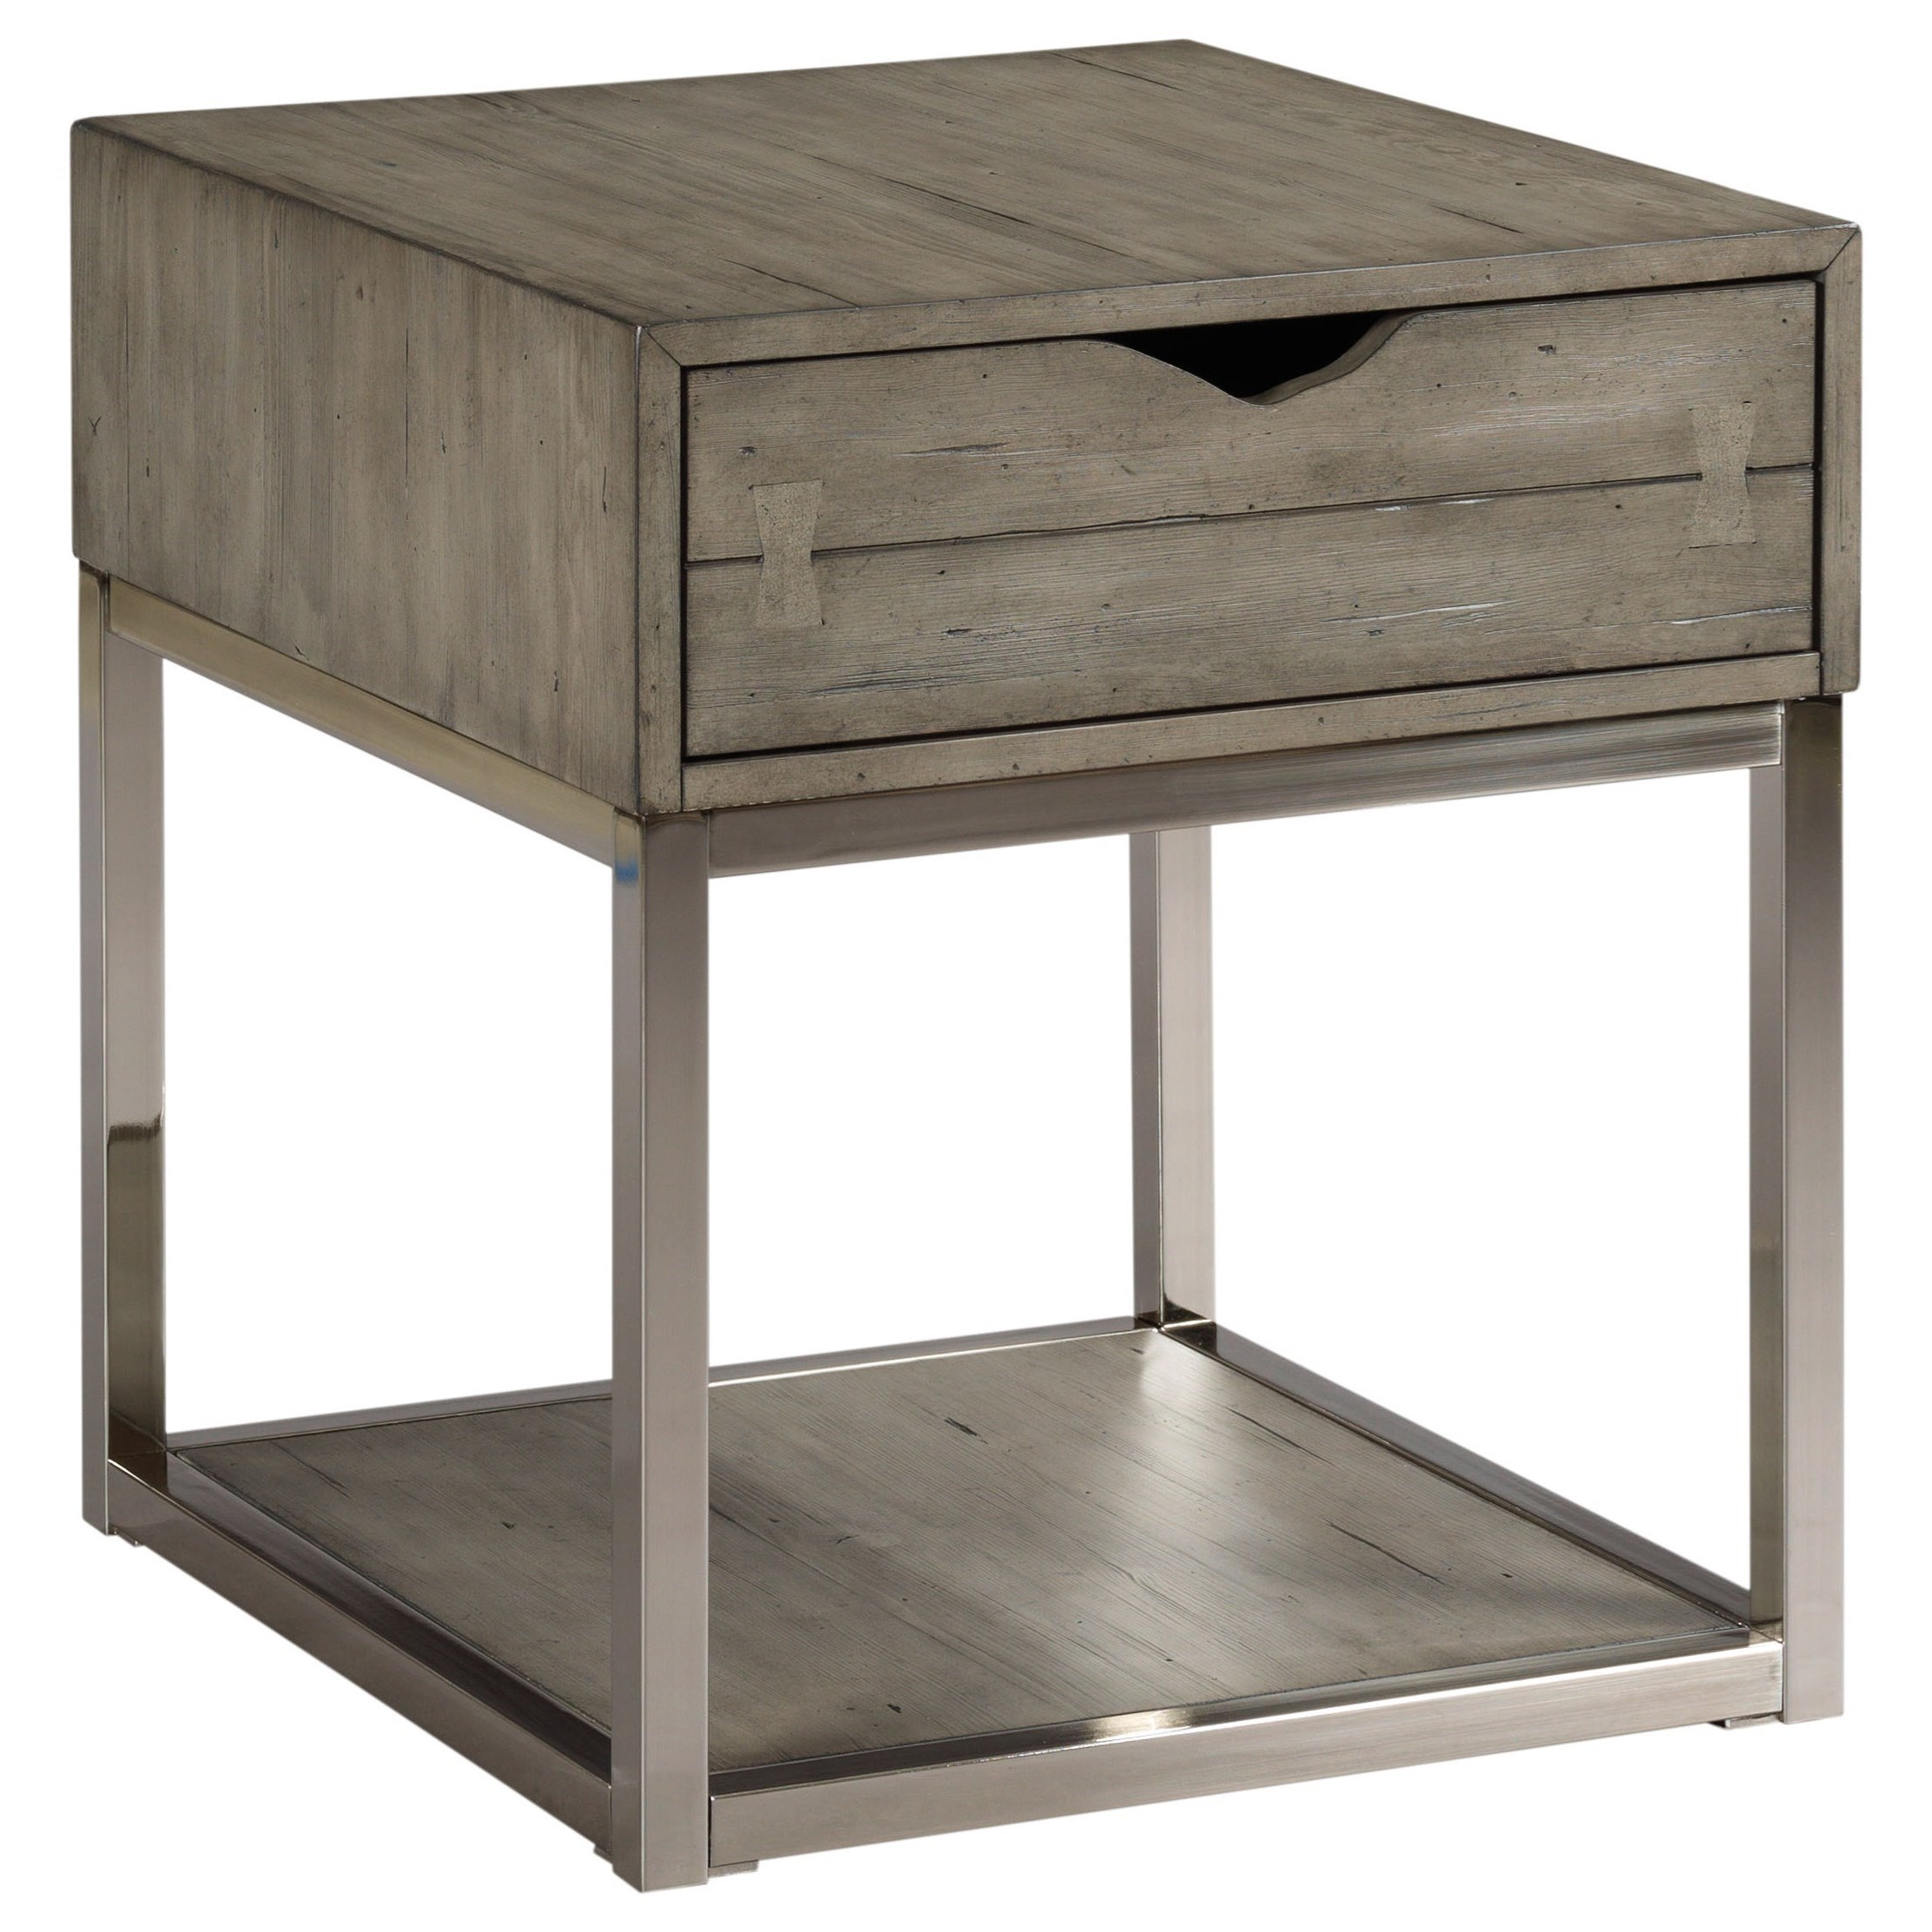 Lakeland Rectangular Drawer End Table by Hammary at Stoney Creek Furniture